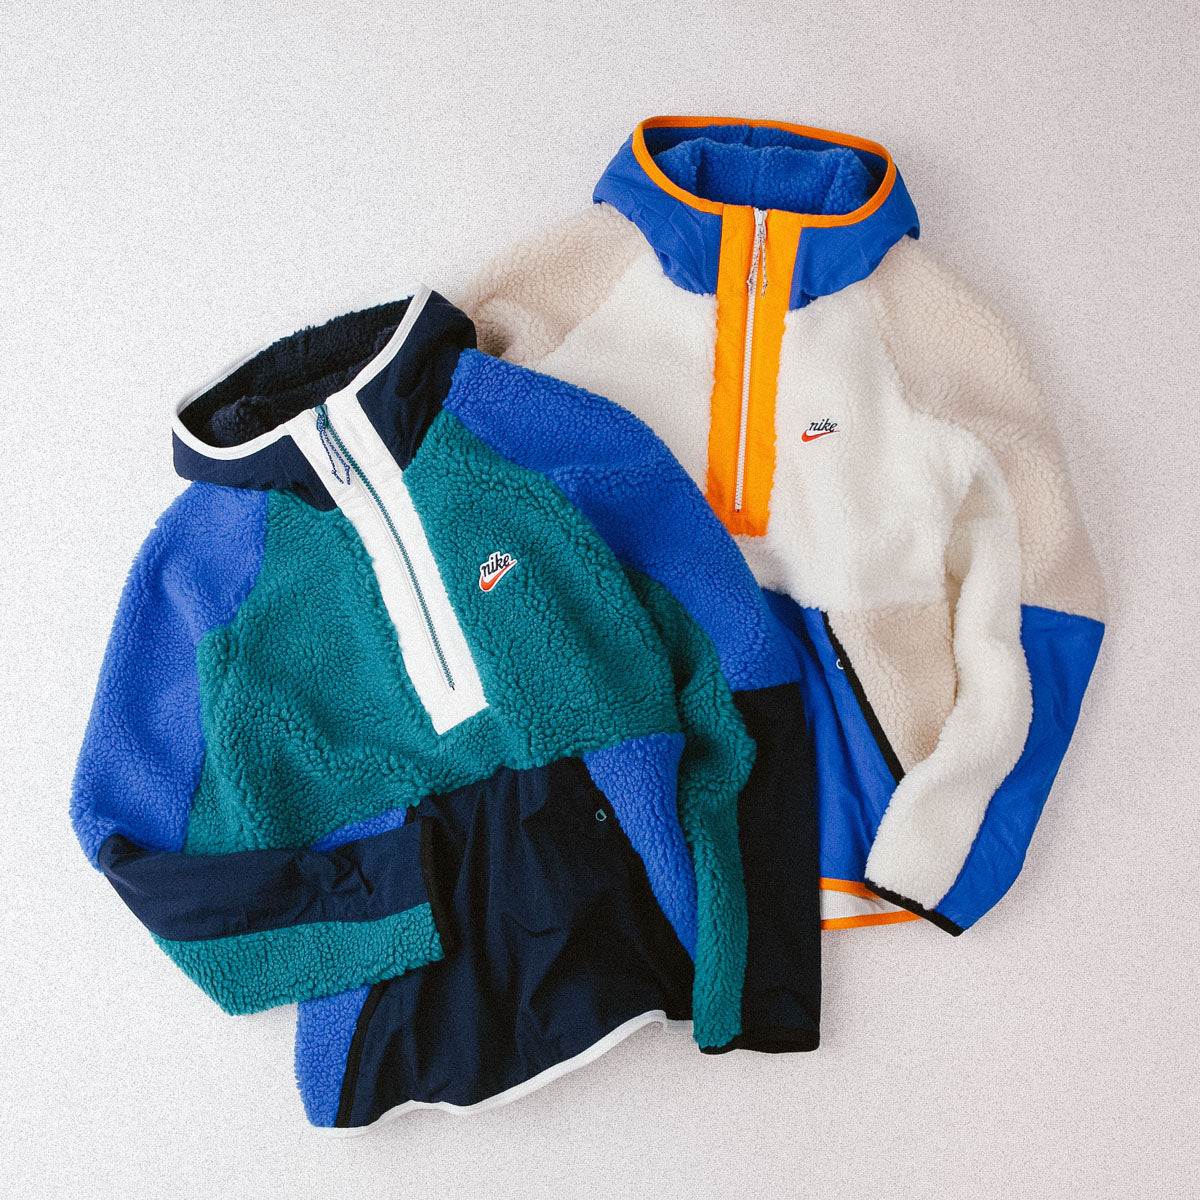 Nike Sportswear Holiday 19: Collection Overview | Always in Colour